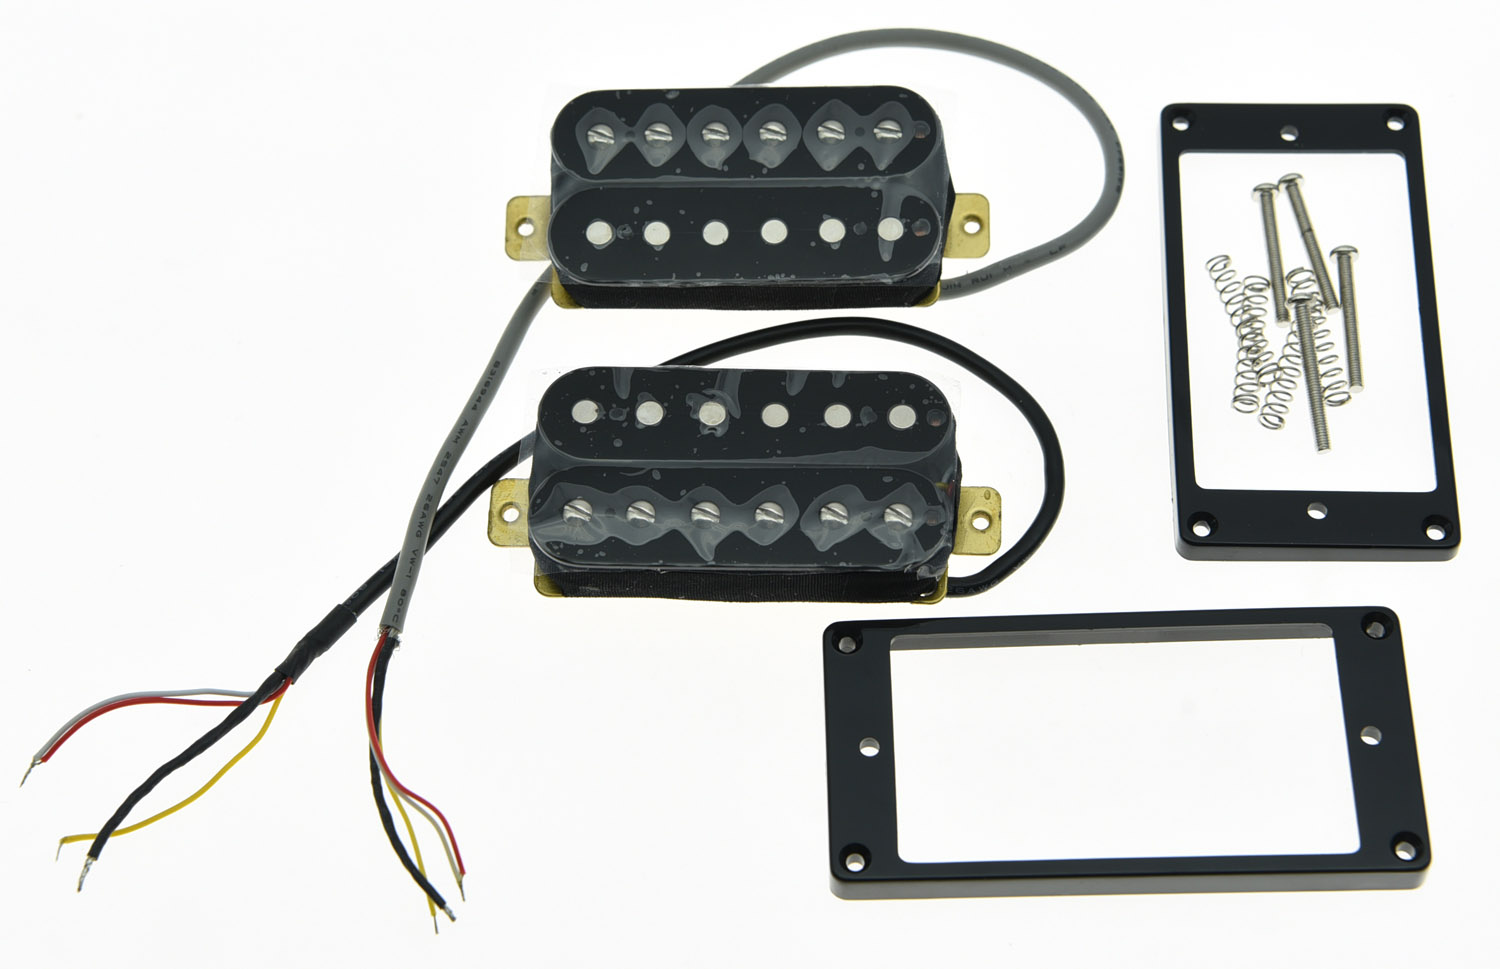 KAISH Set of 2 Black 50's Vintage Sound Pickups Alnico V Humbucker Neck&Bridge Pickup new humbucker pickup set gold four conductor wires alnico v pickups